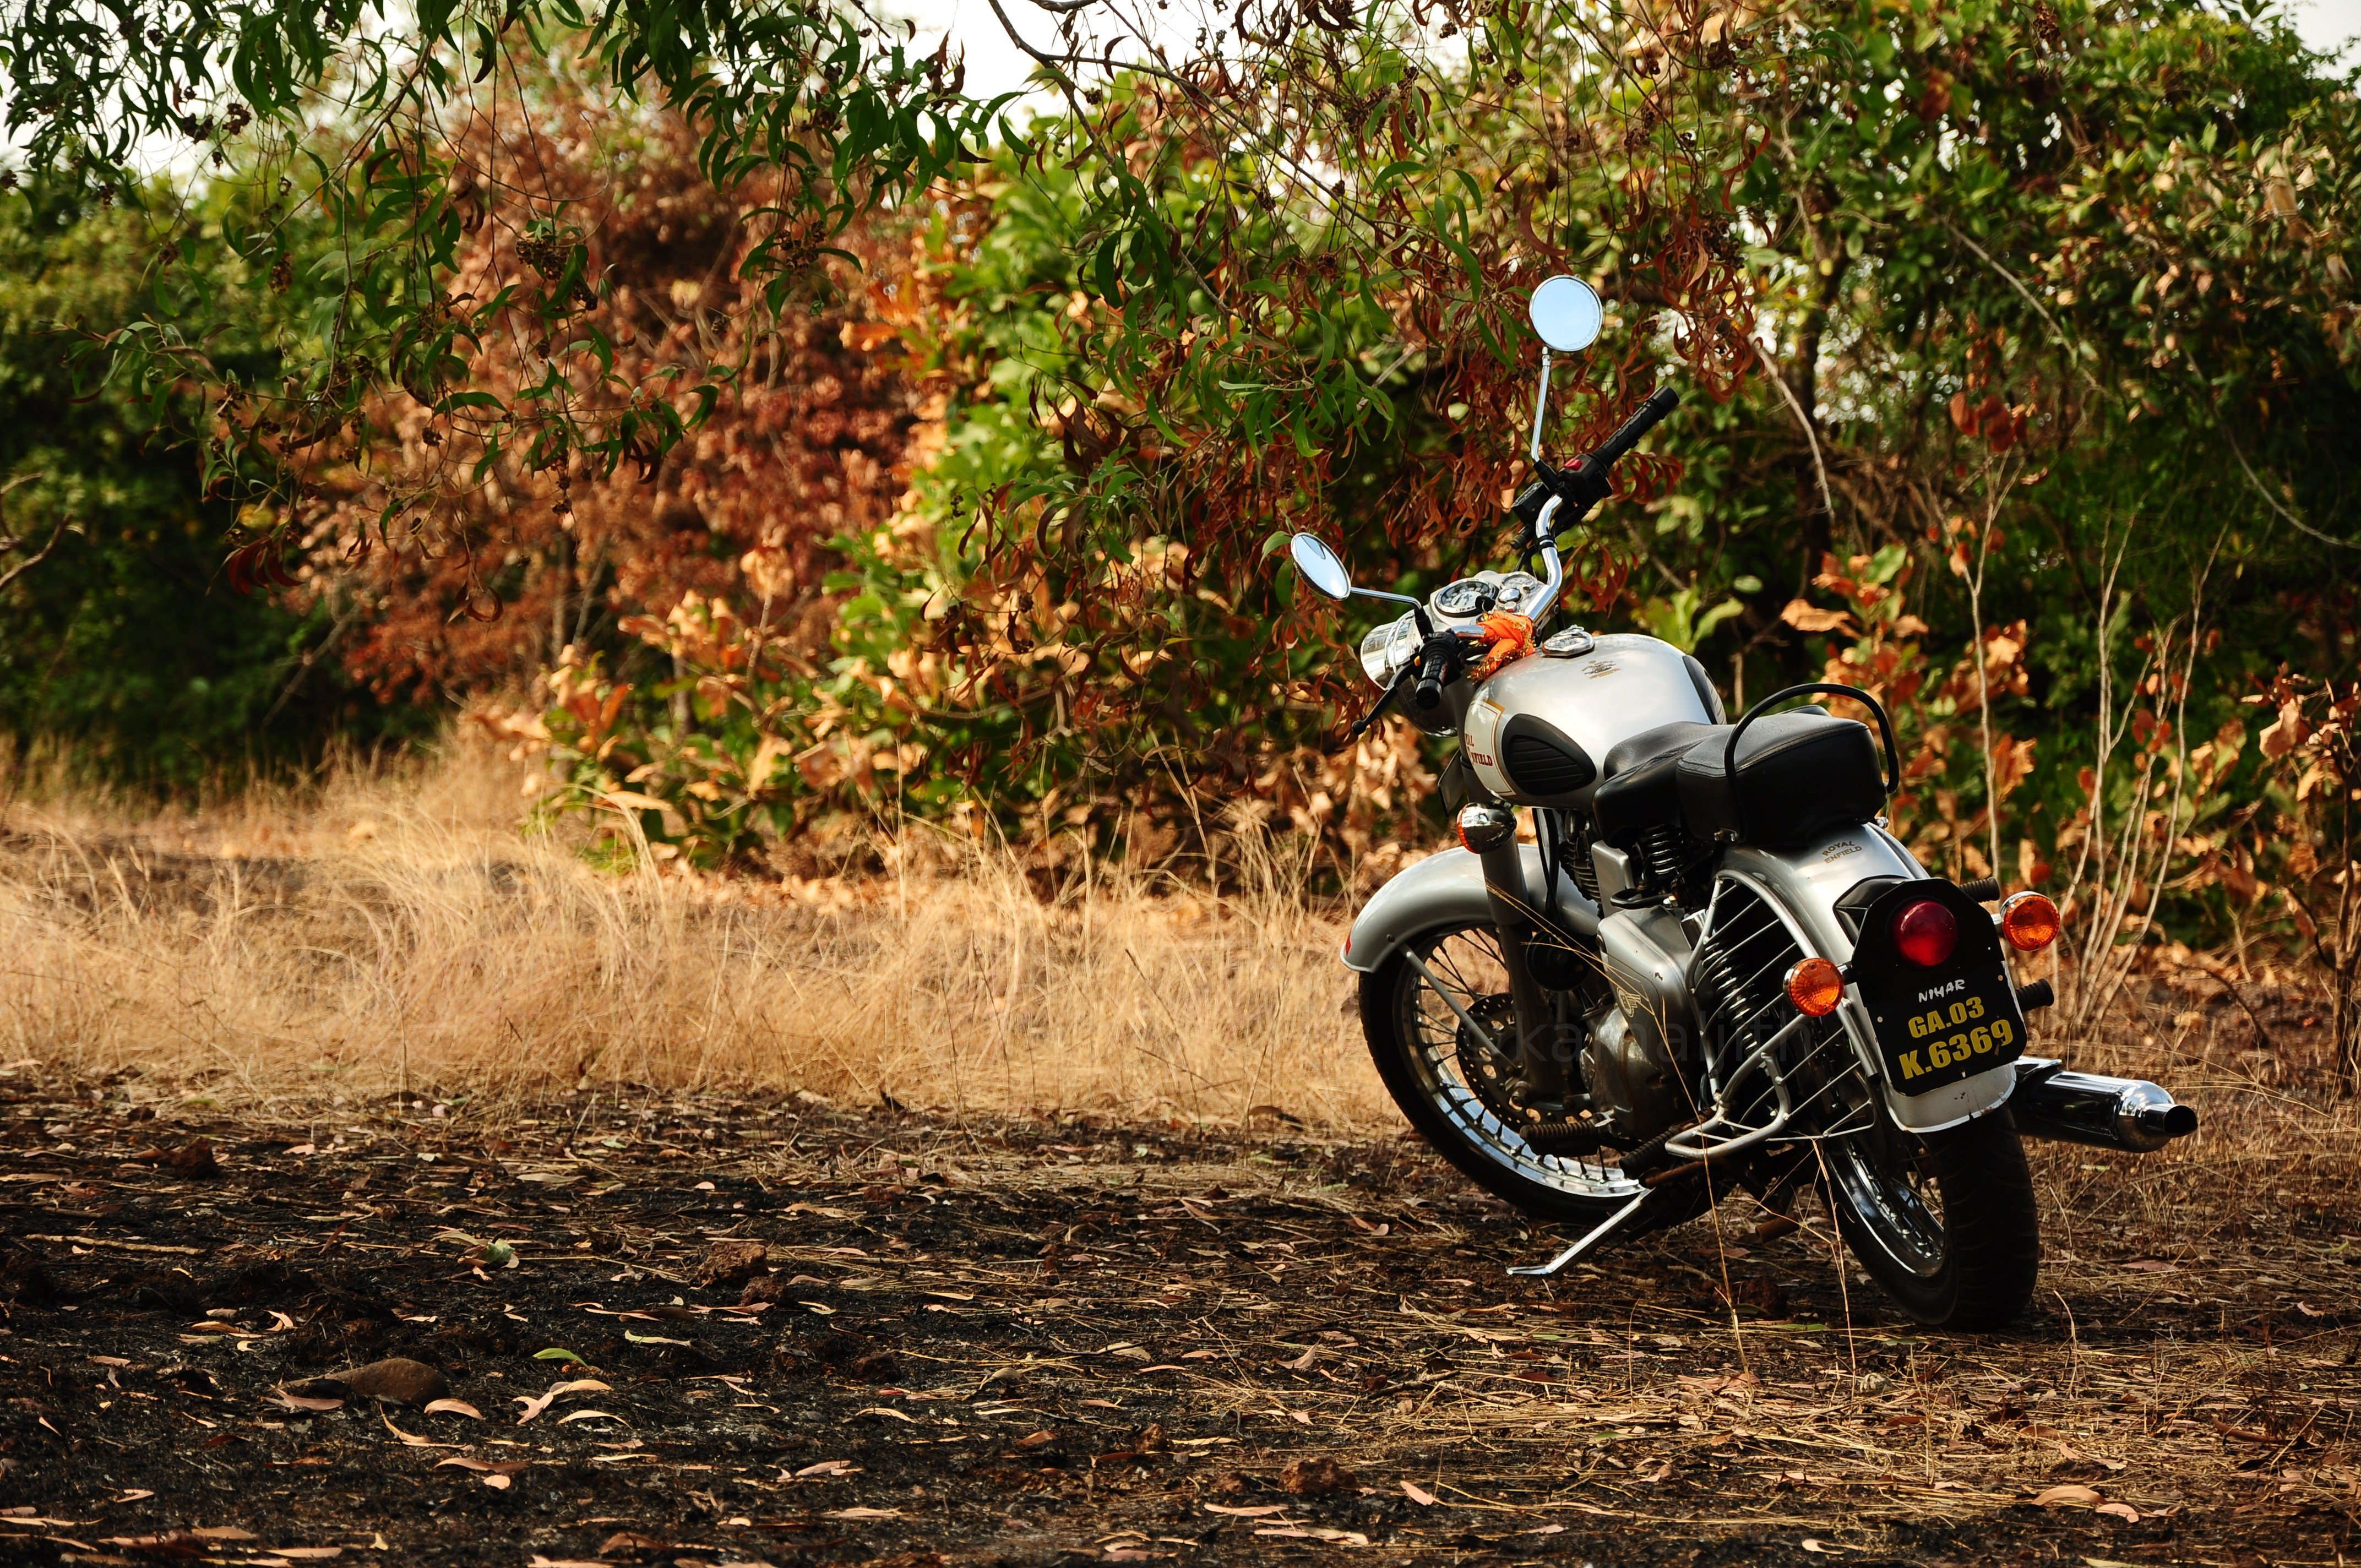 Download wallpaper 4288x2848 motorcycle autumn vehicle hd background 4288x2848